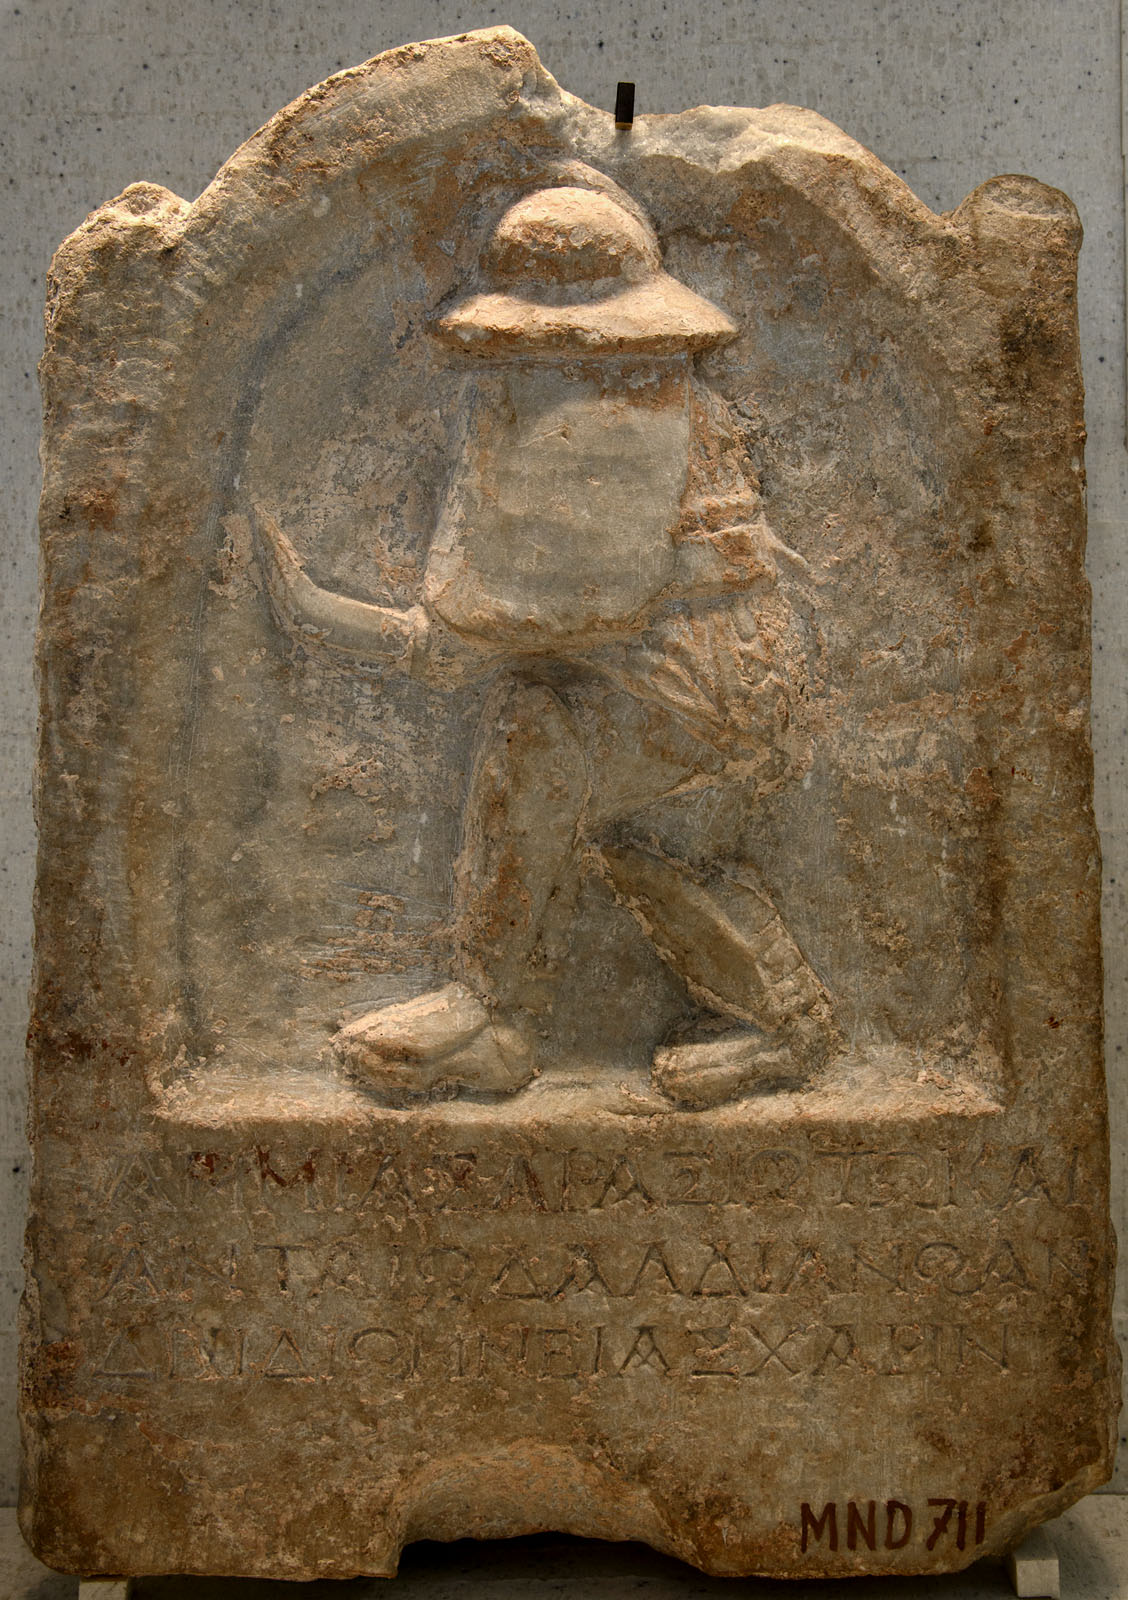 Grave stele of a thracian gladiator. Grey marble. 3rd century CE. Inv. No. Ma 4492 (MND 711). Paris, Louvre Museum